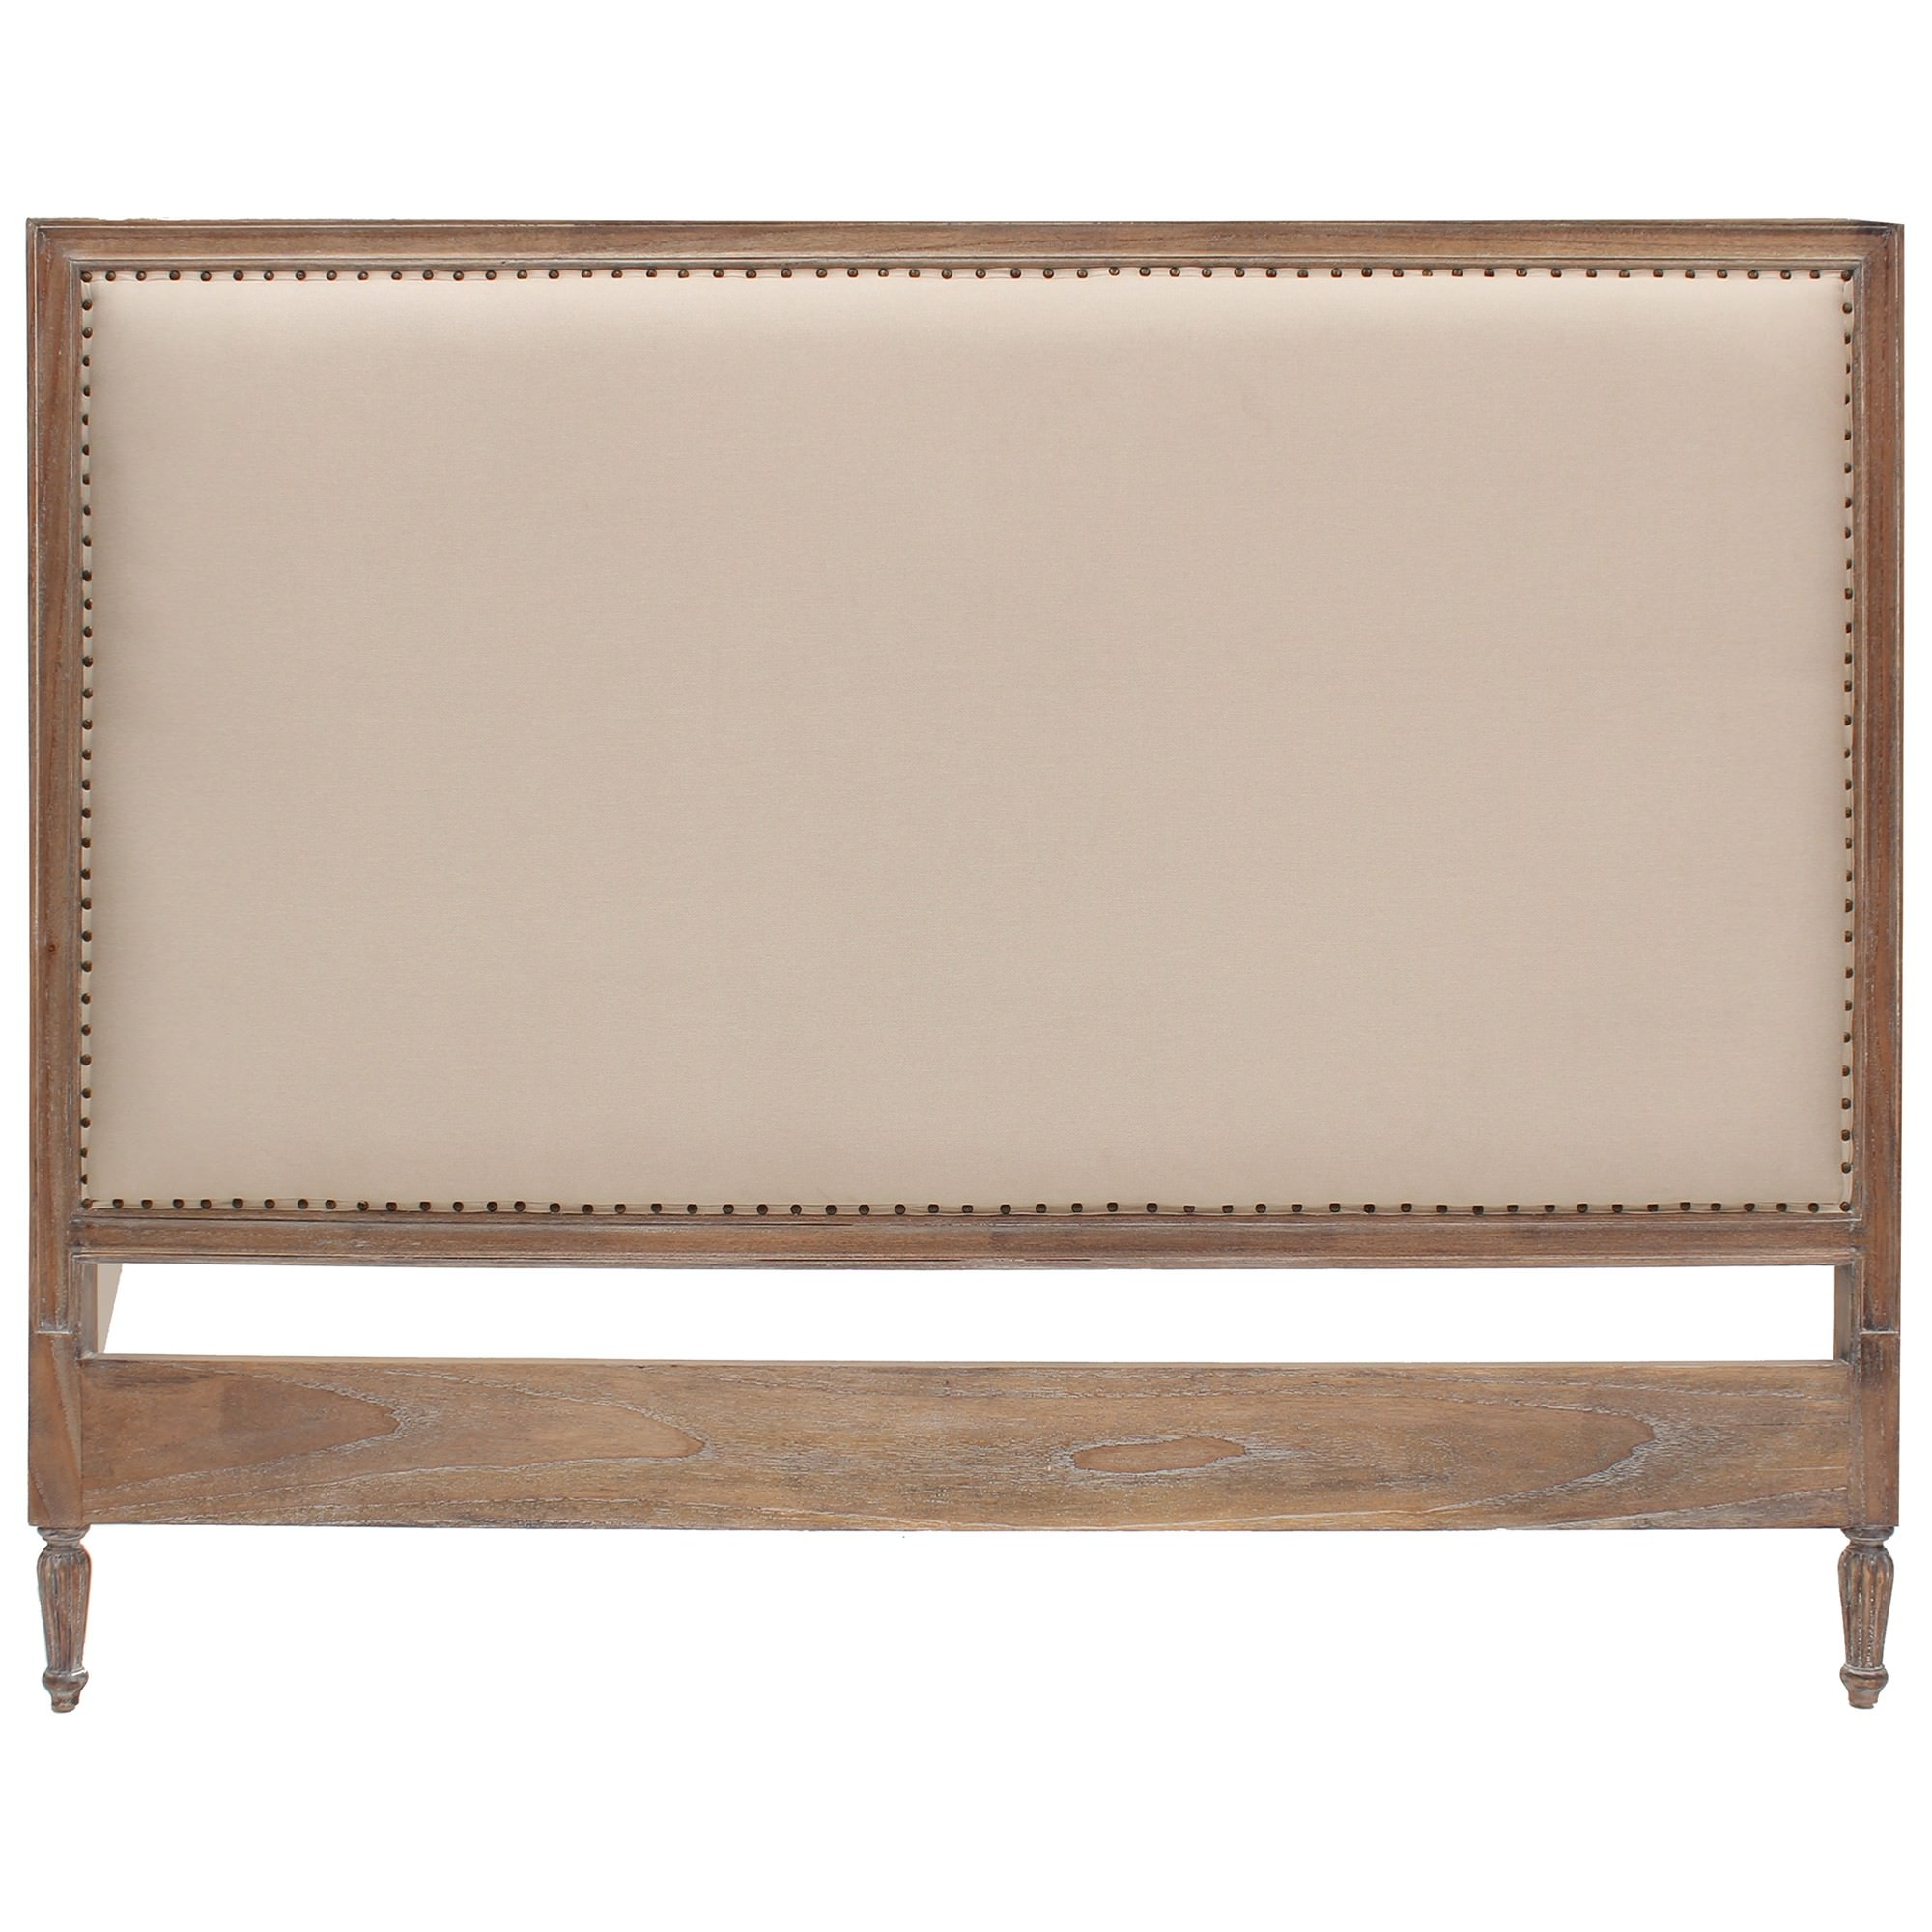 Ygrande Hand Crafted Mahogany Upholstered Queen Size Headboard, Weathered Oak